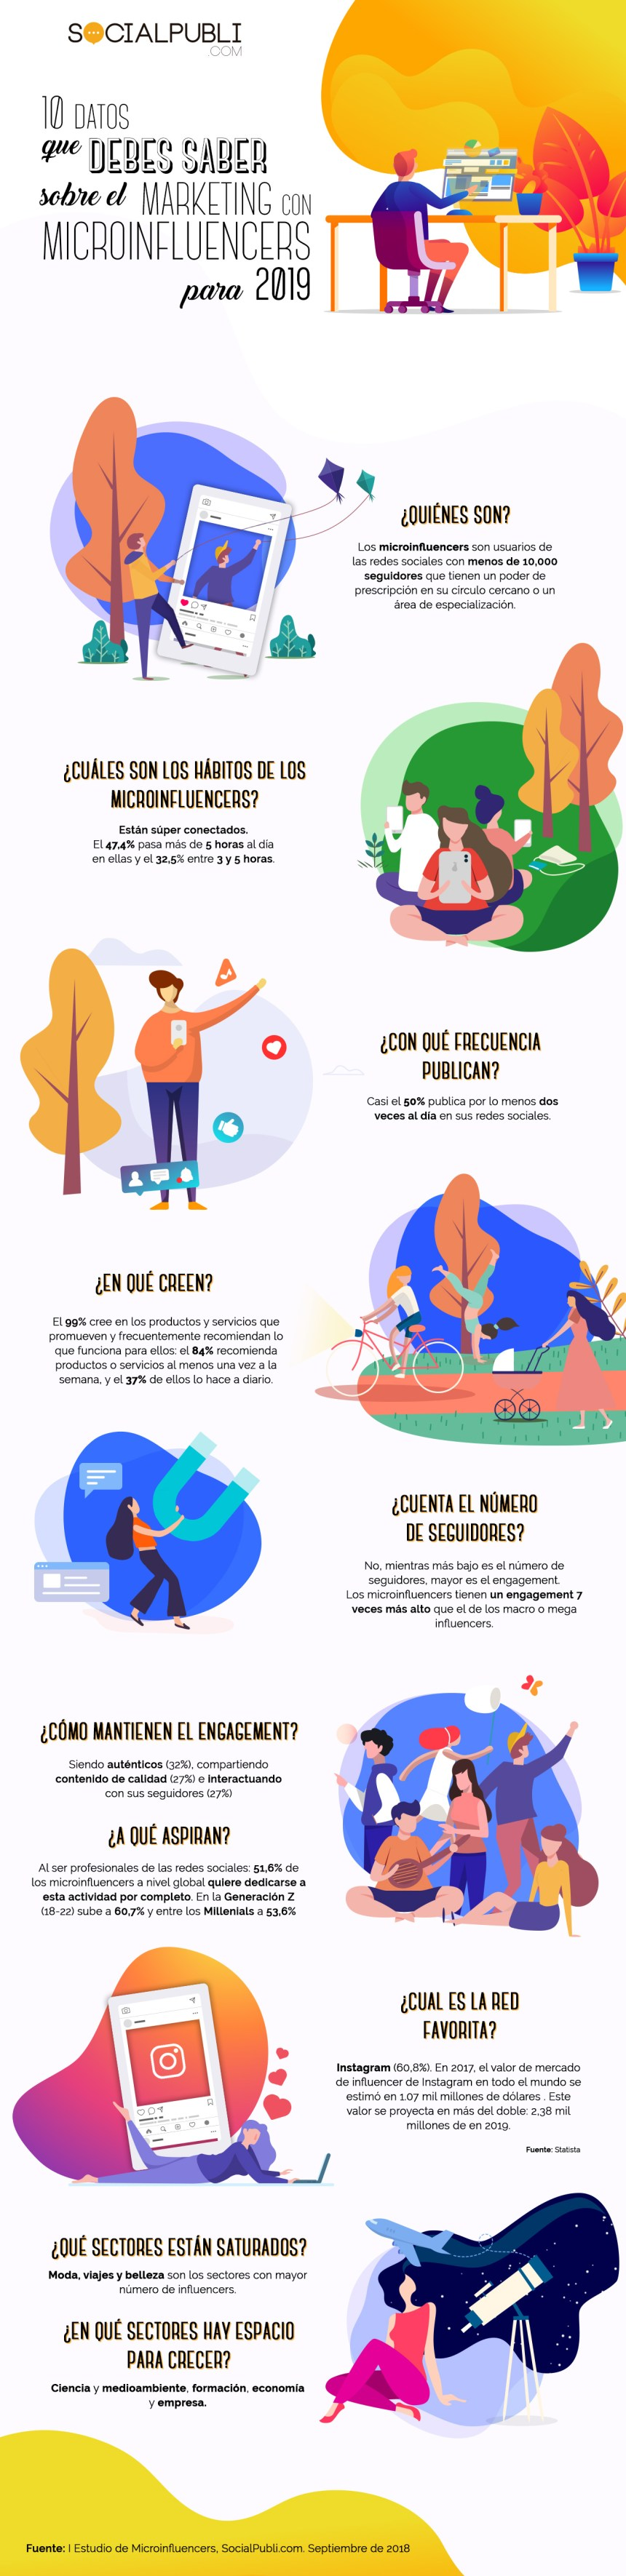 10 datos que debes conocer sobre el Marketing de Microinfluencers #infografia #marketing